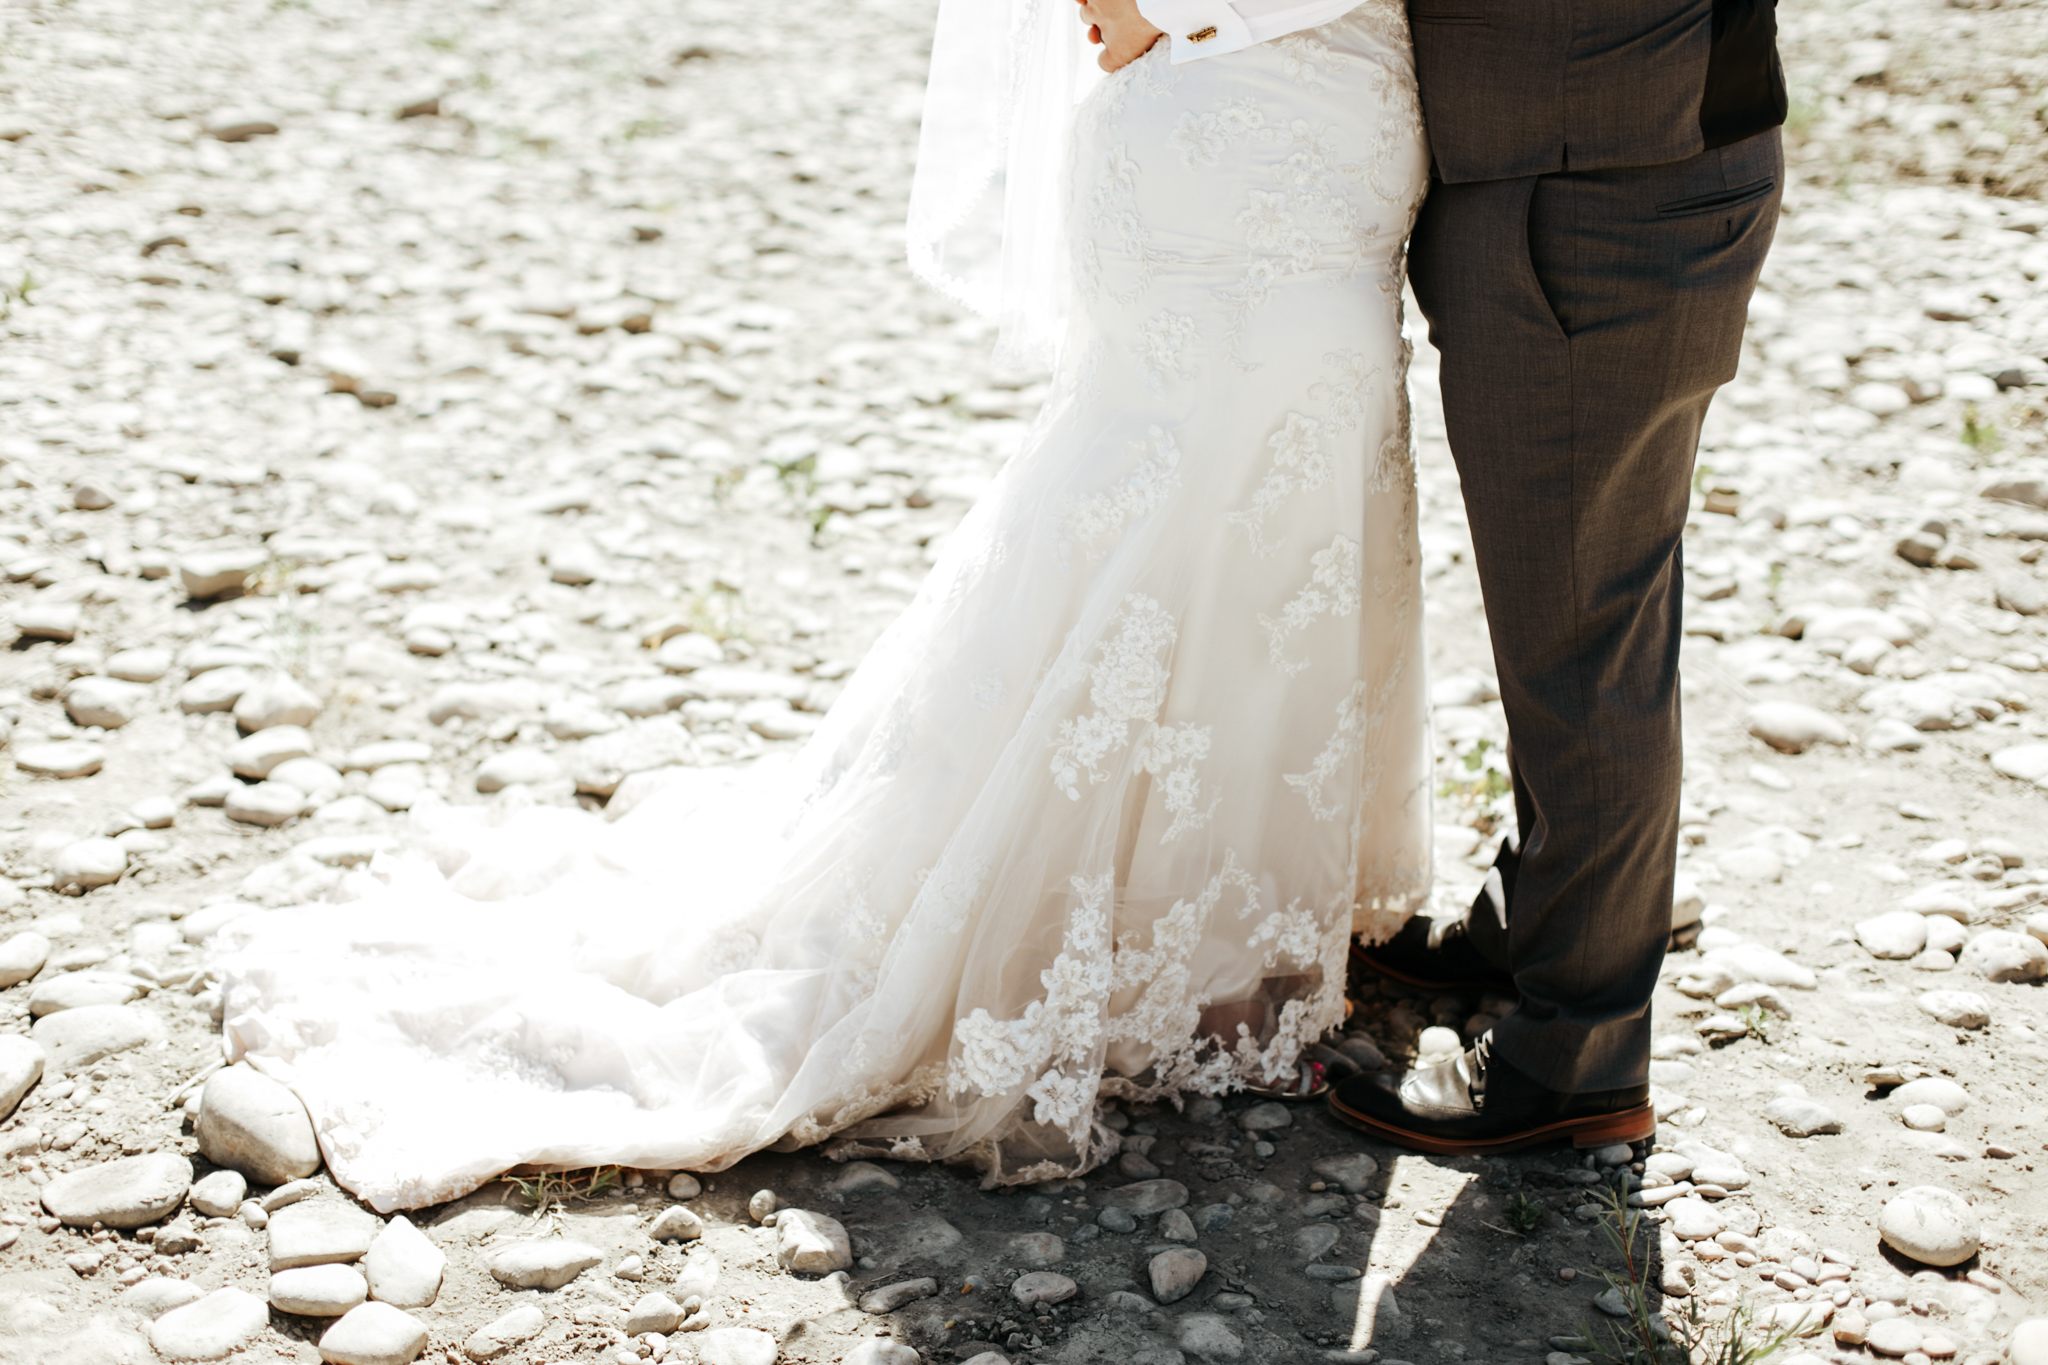 lethbridge-wedding-photographer-love-and-be-loved-photography-trent-danielle-galt-reception-picture-image-photo-126.jpg